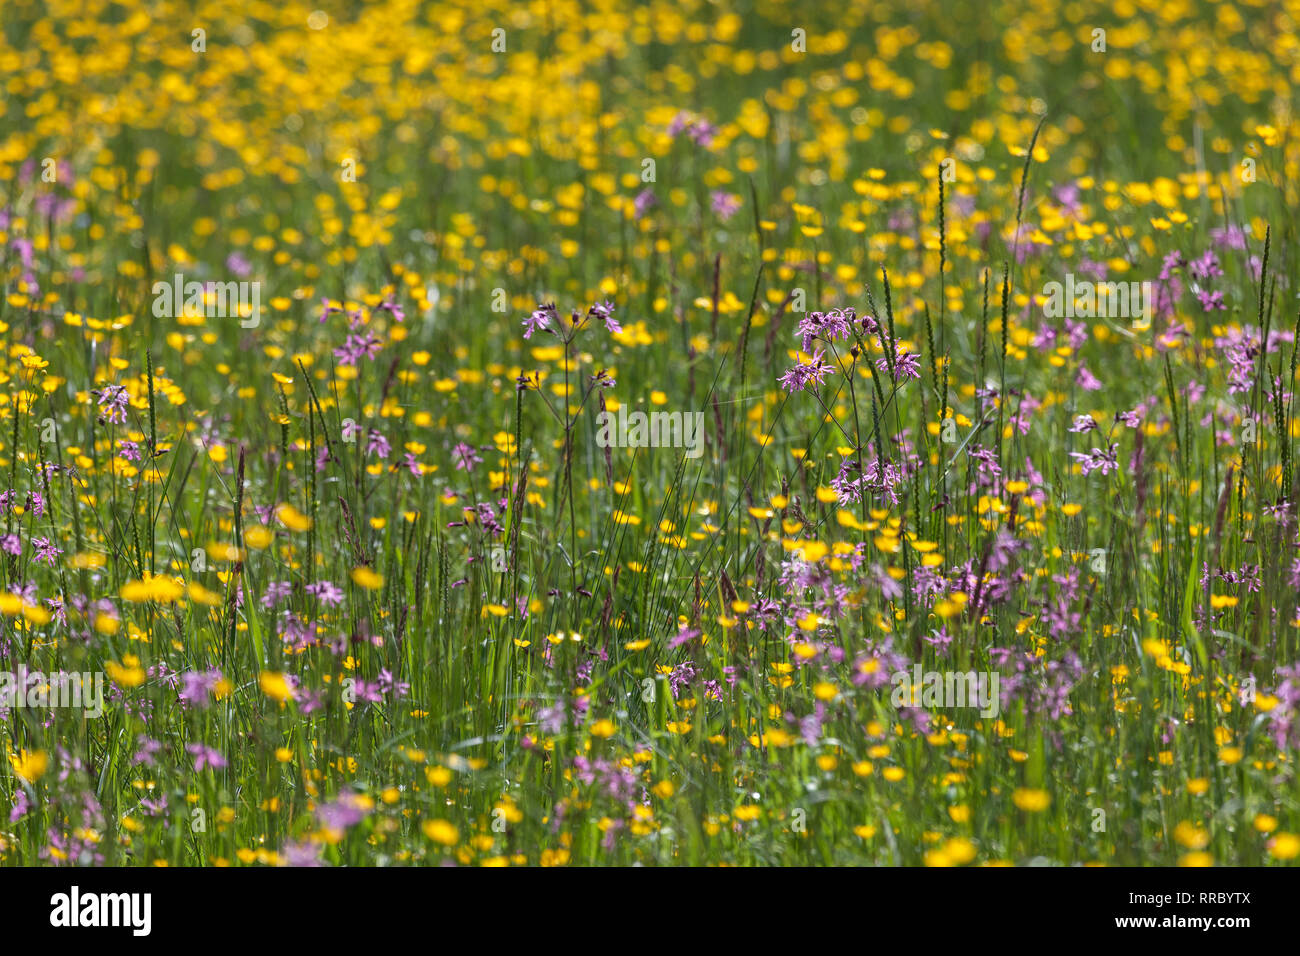 botany, crowfoot (Ranunculus), marshy meadow with crowfoot, Additional-Rights-Clearance-Info-Not-Available - Stock Image